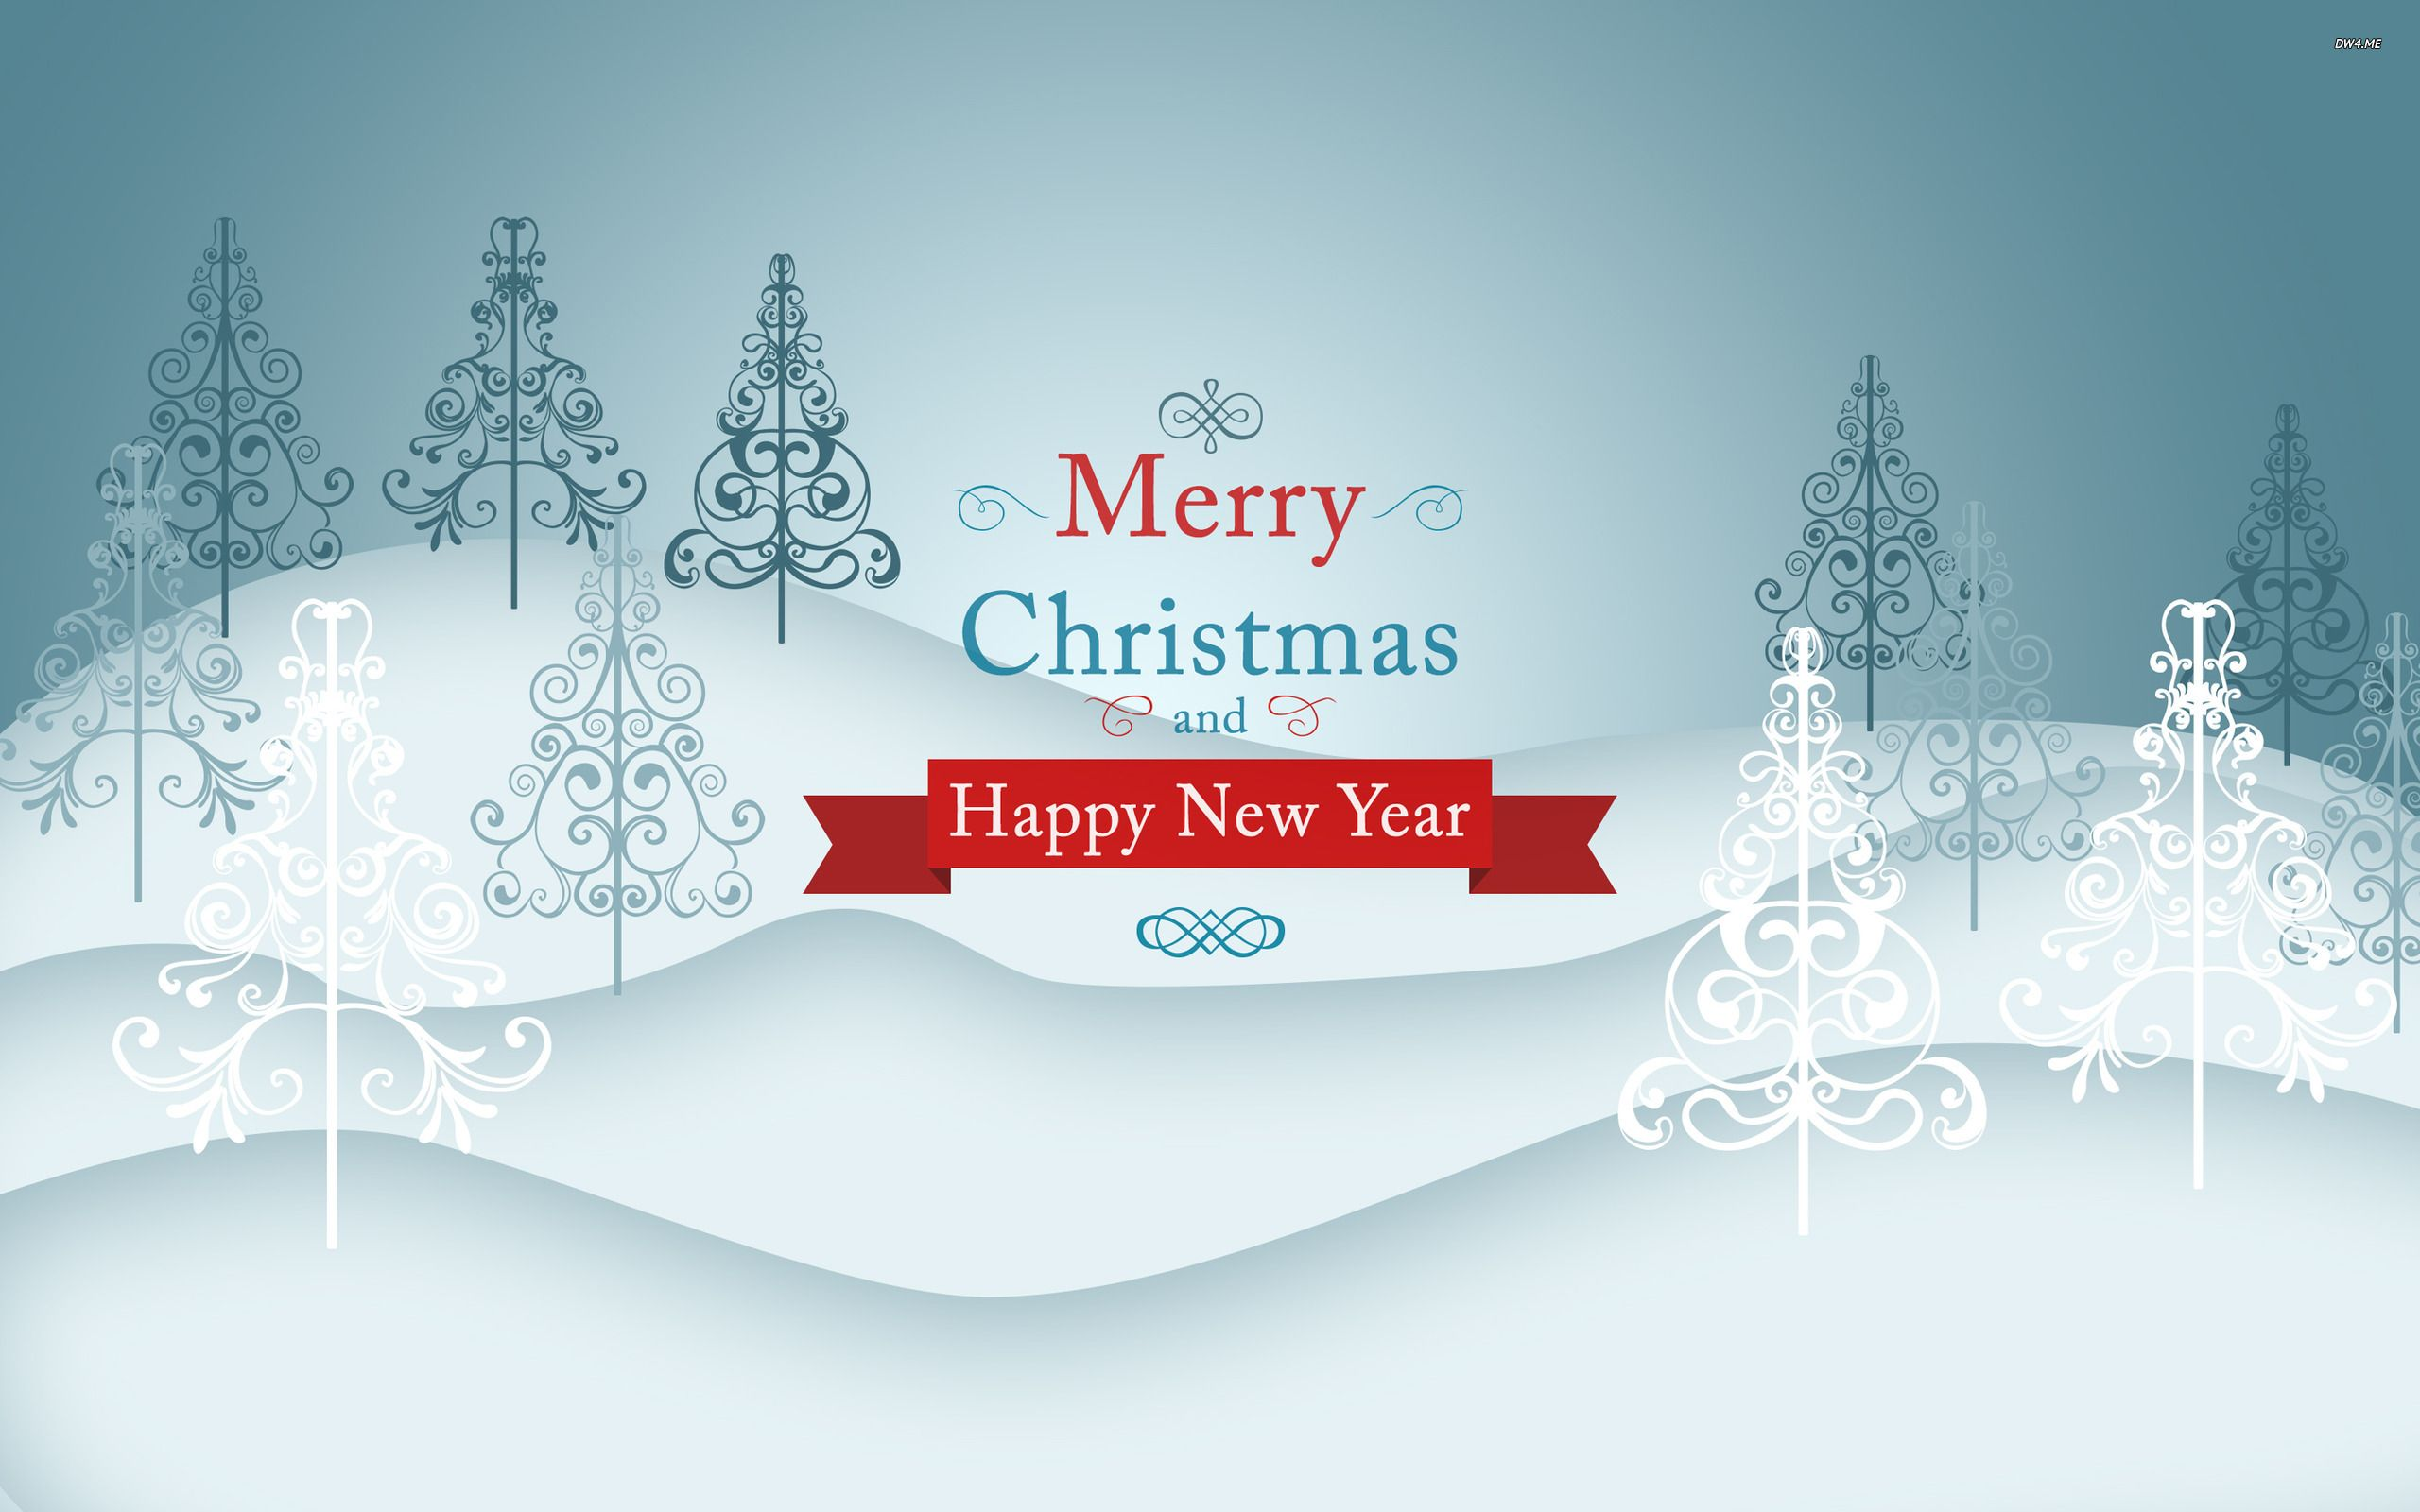 merry christmas and happy new year images merry christmas wallpaper happy new year wallpaper happy new year images merry christmas and happy new year